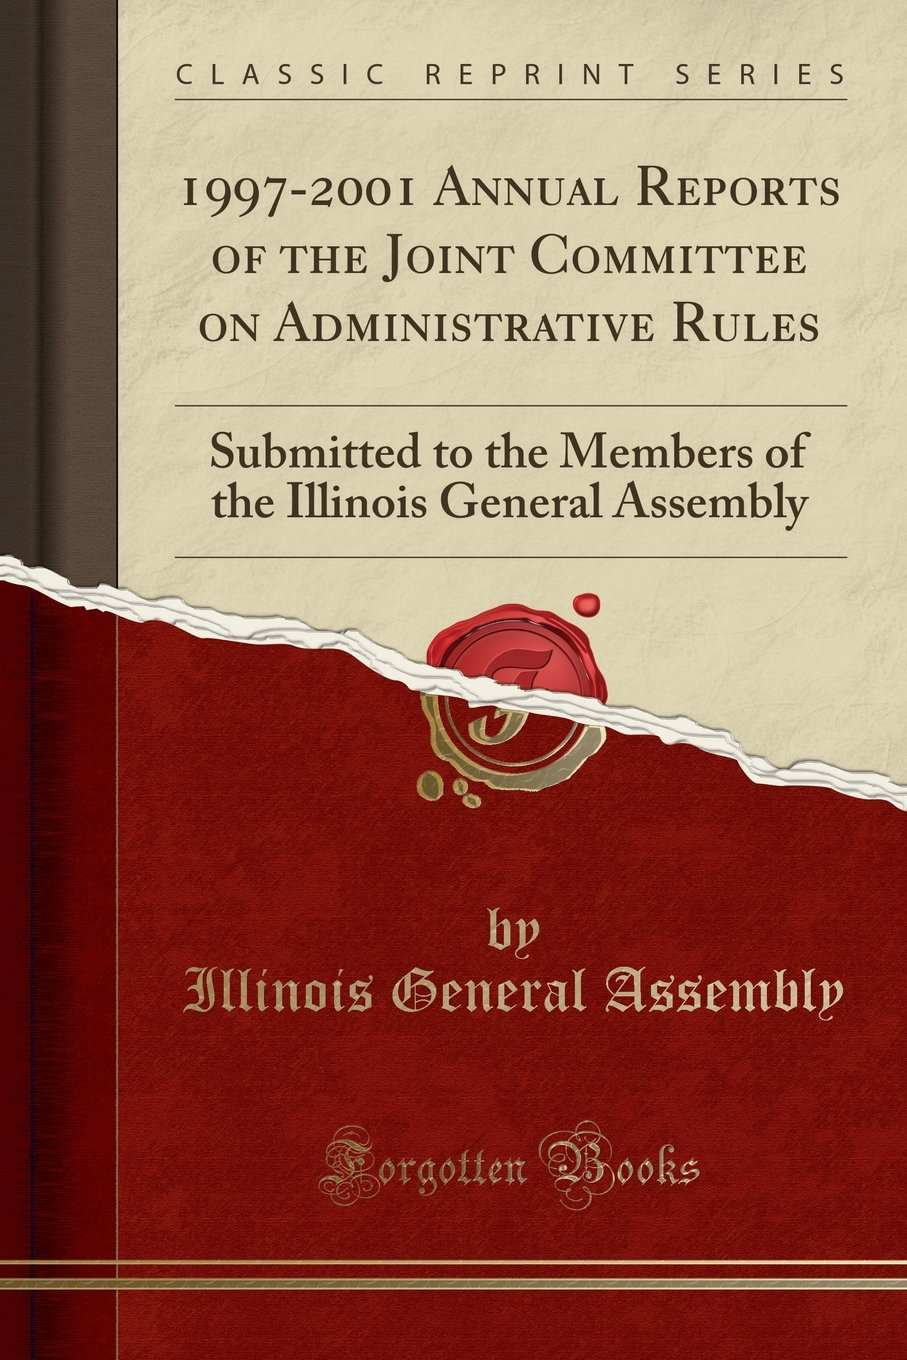 Download 1997-2001 Annual Reports of the Joint Committee on Administrative Rules: Submitted to the Members of the Illinois General Assembly (Classic Reprint) PDF